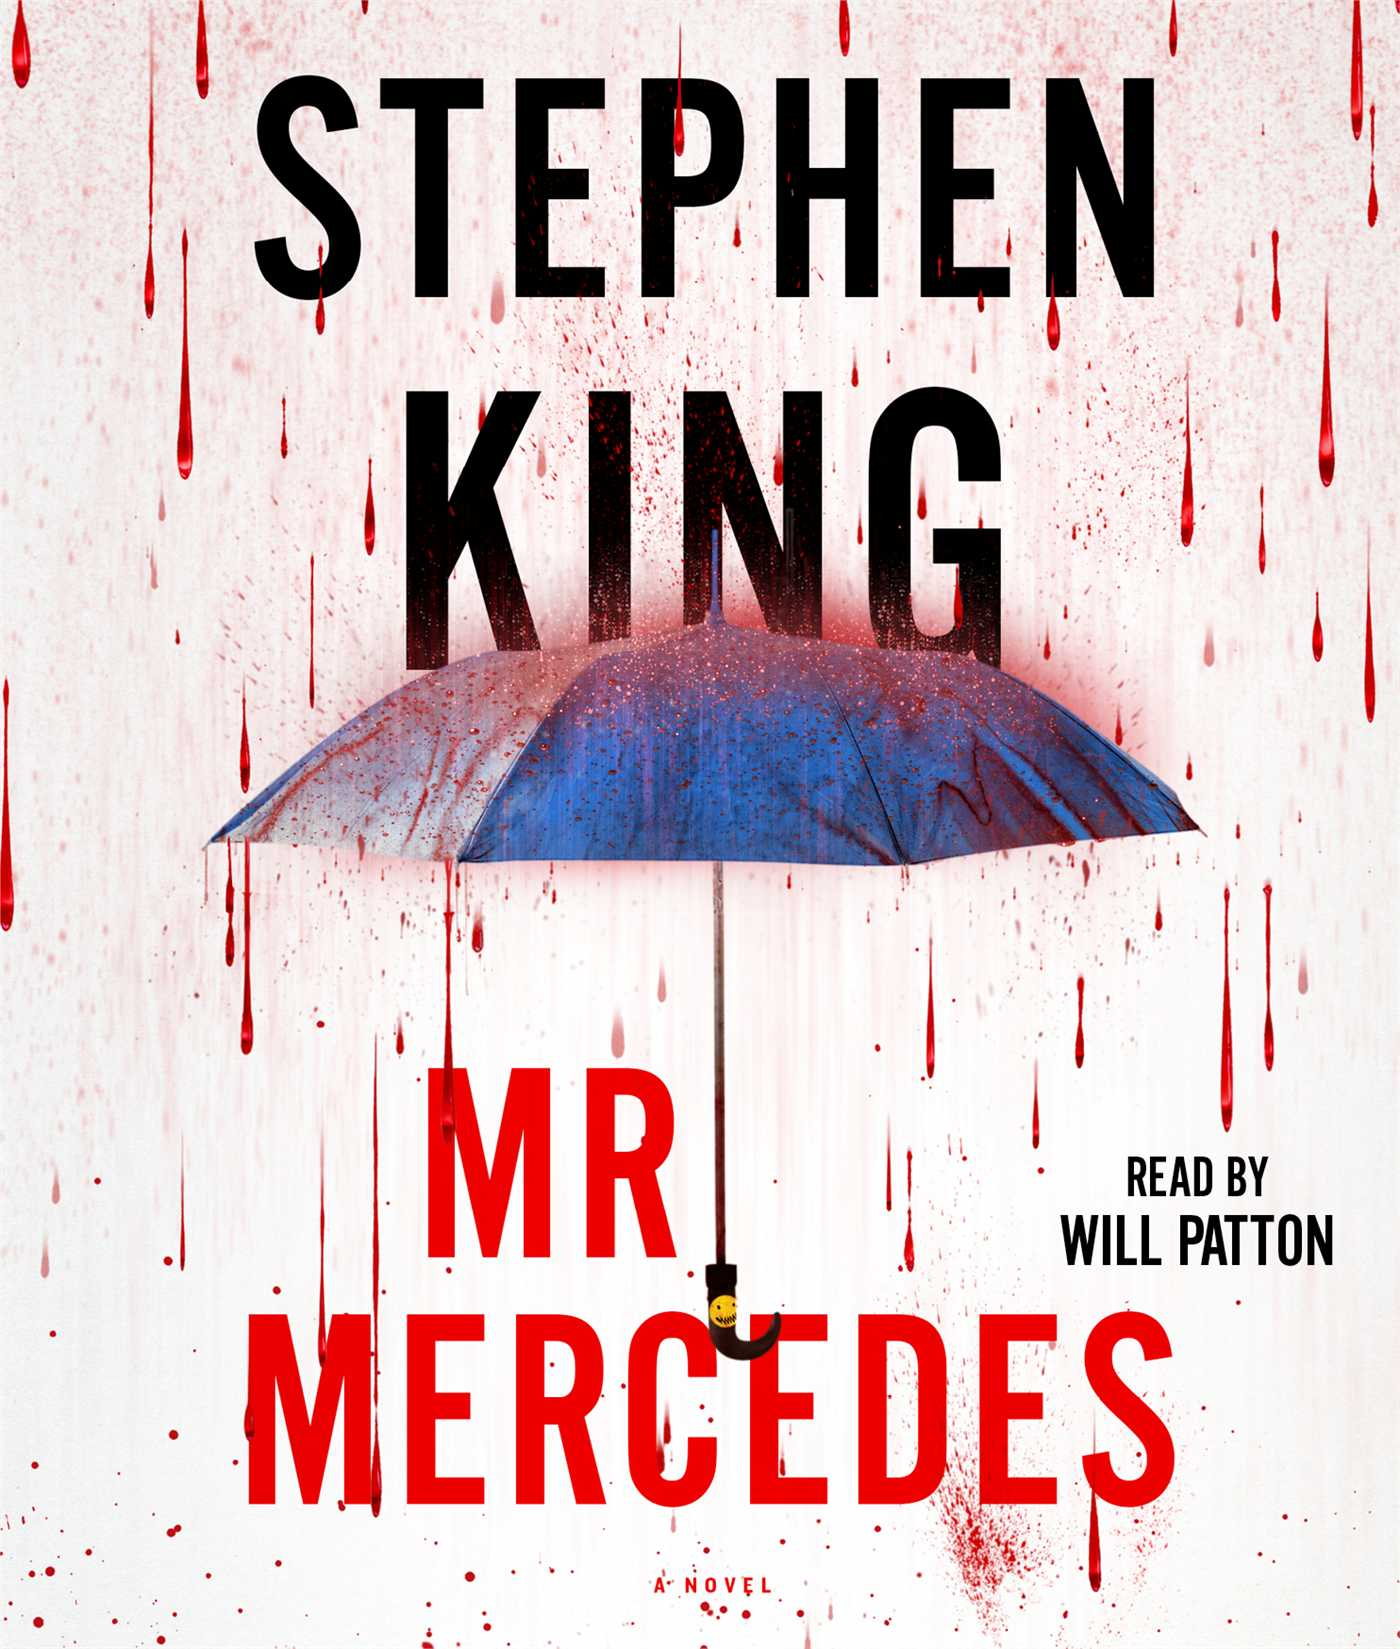 Mr-mercedes-9781442369788_hr